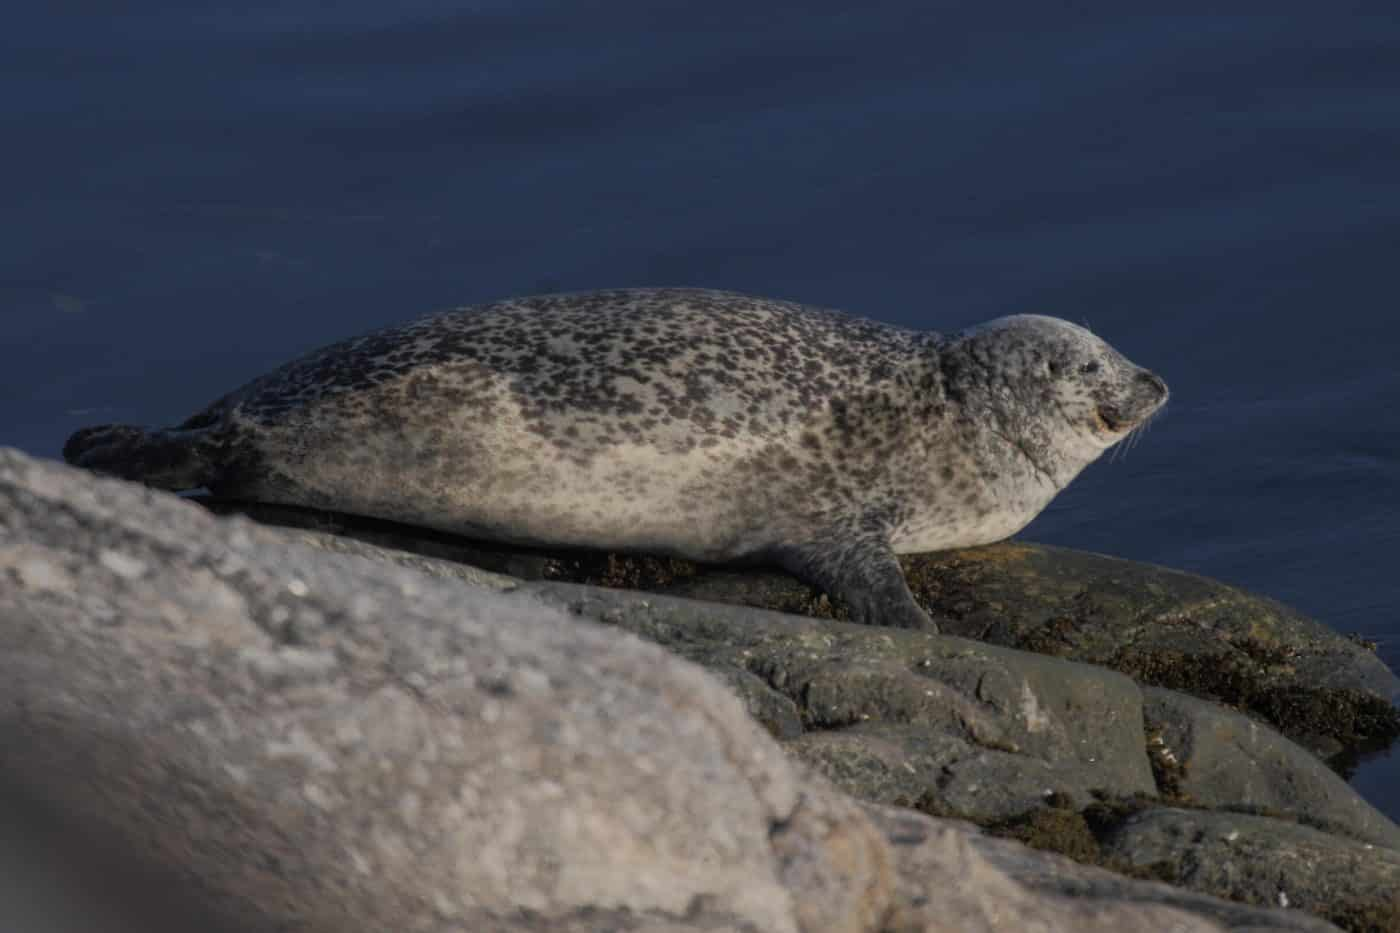 A harbor seal in Greenland, by Aqqa Rosing-Asvid